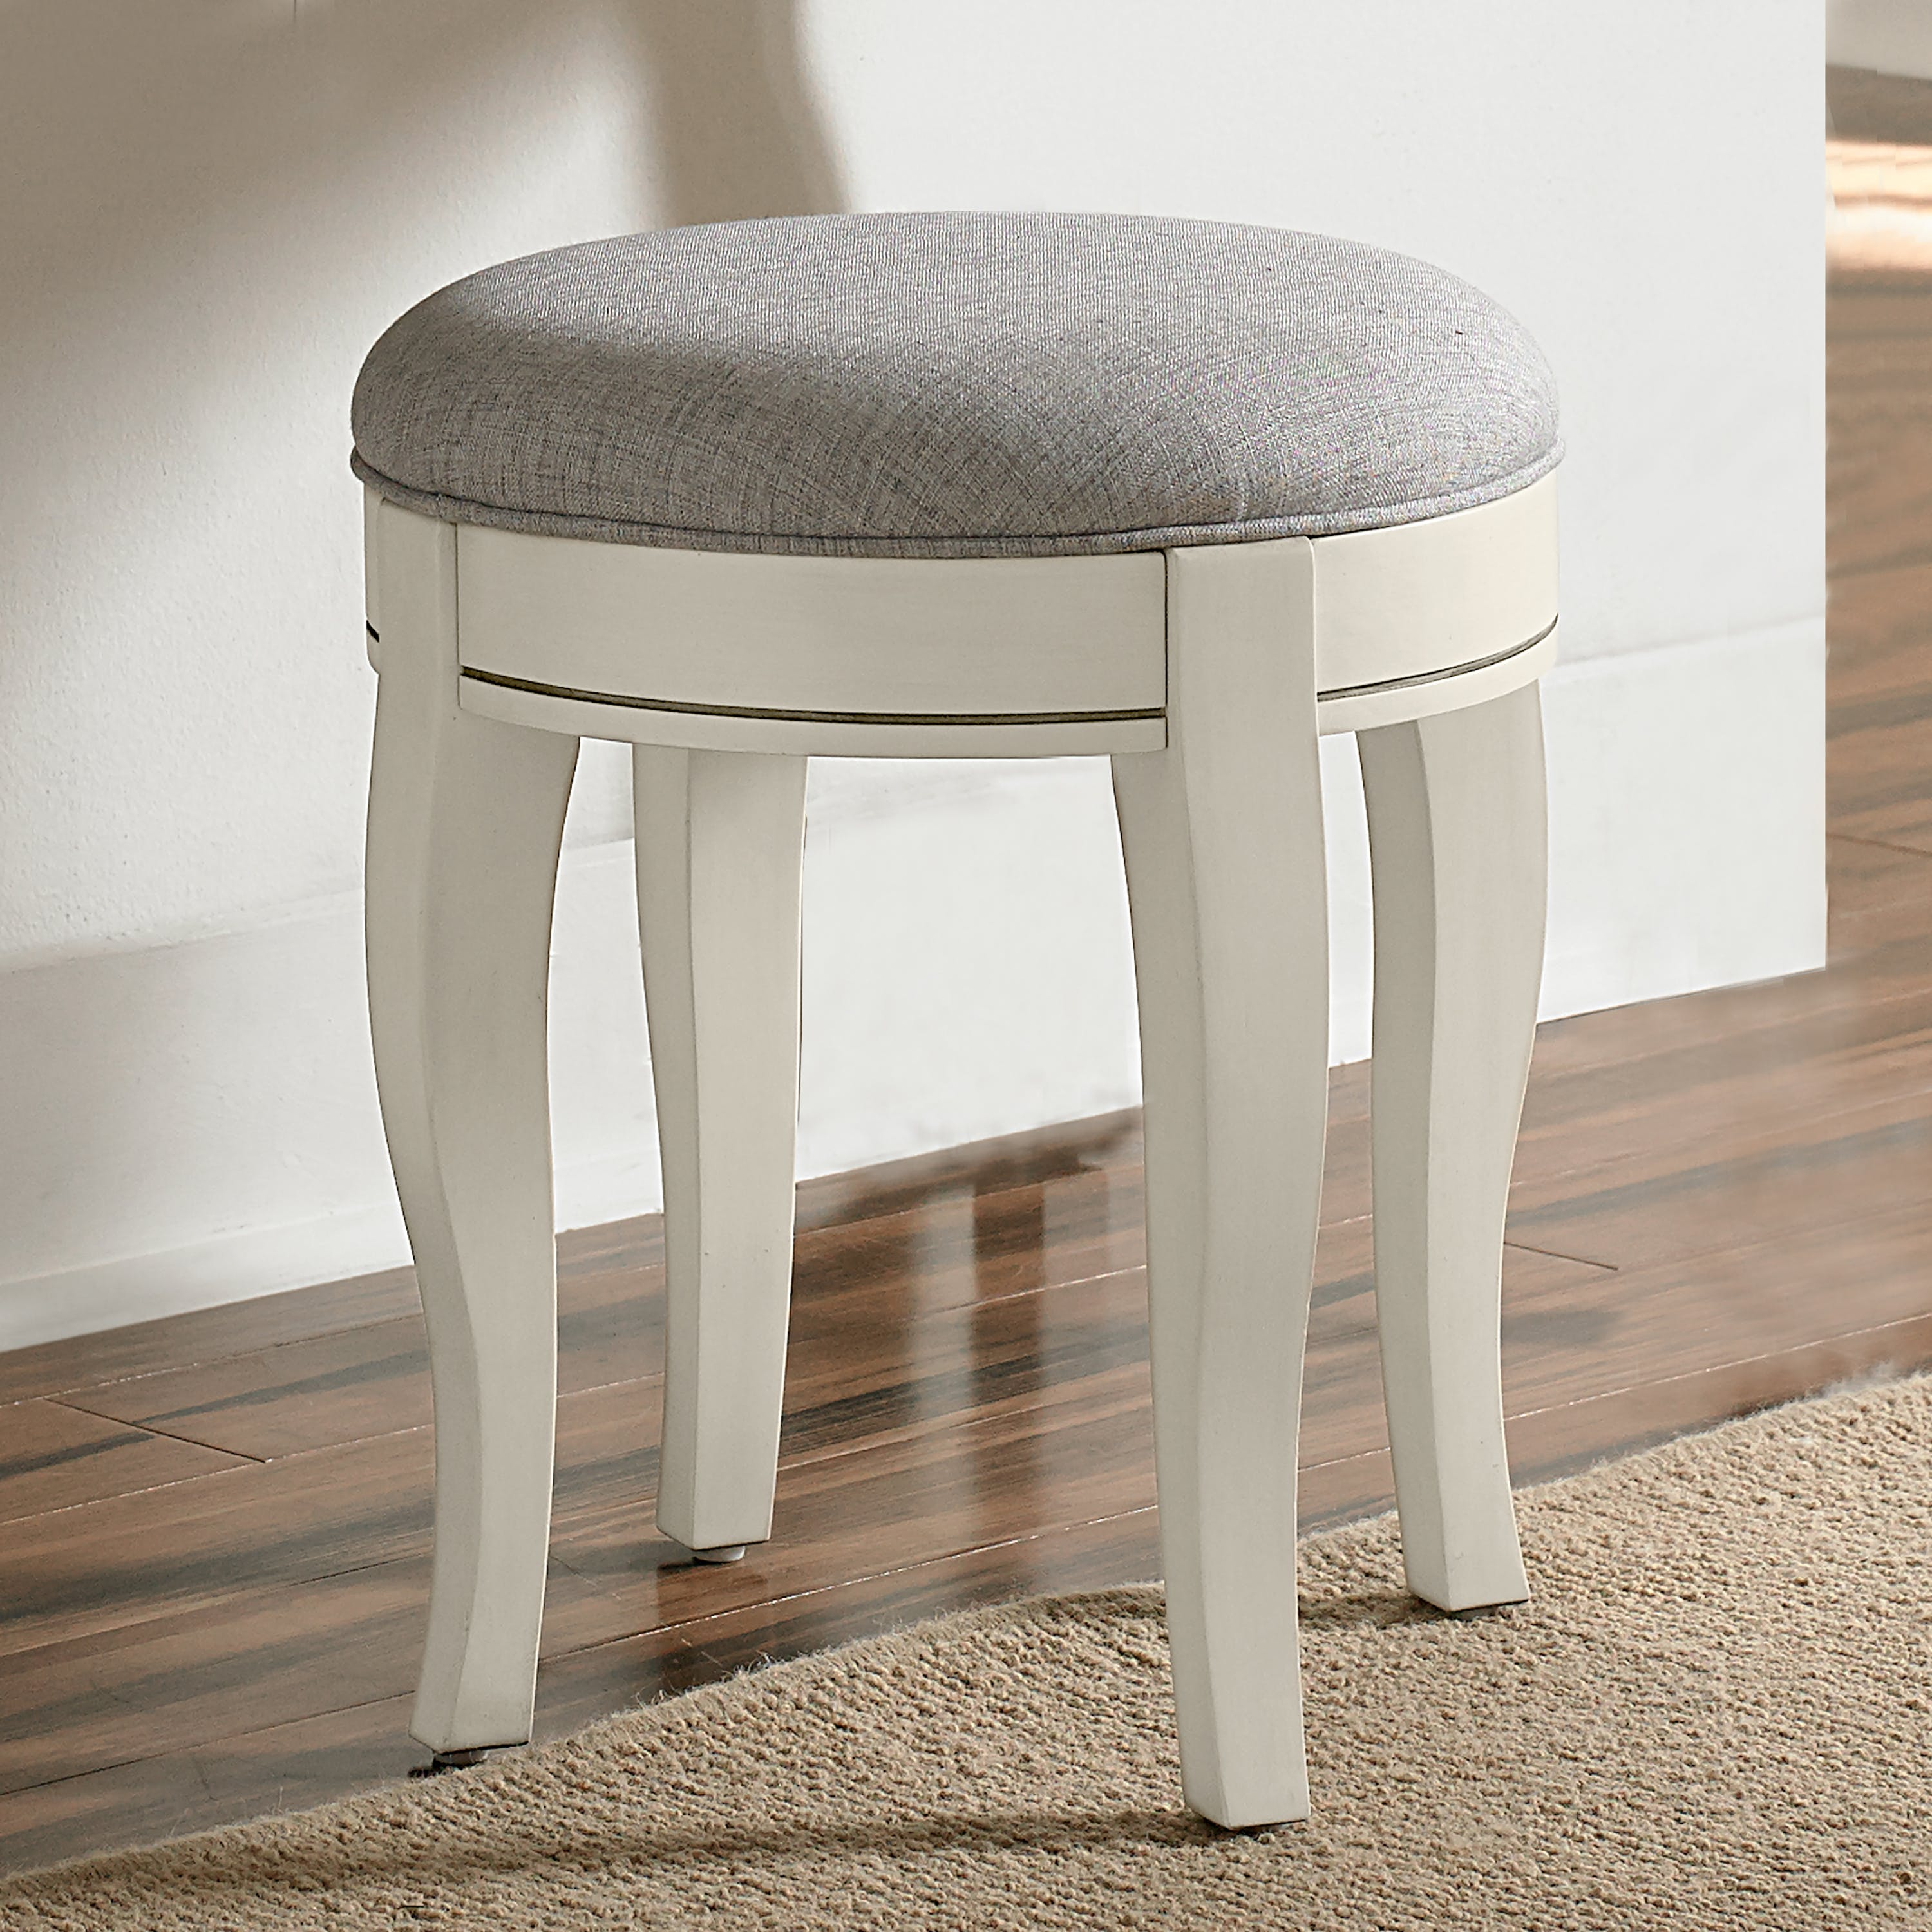 Bedroom Stools - Bennington Furniture - Bennington, VT